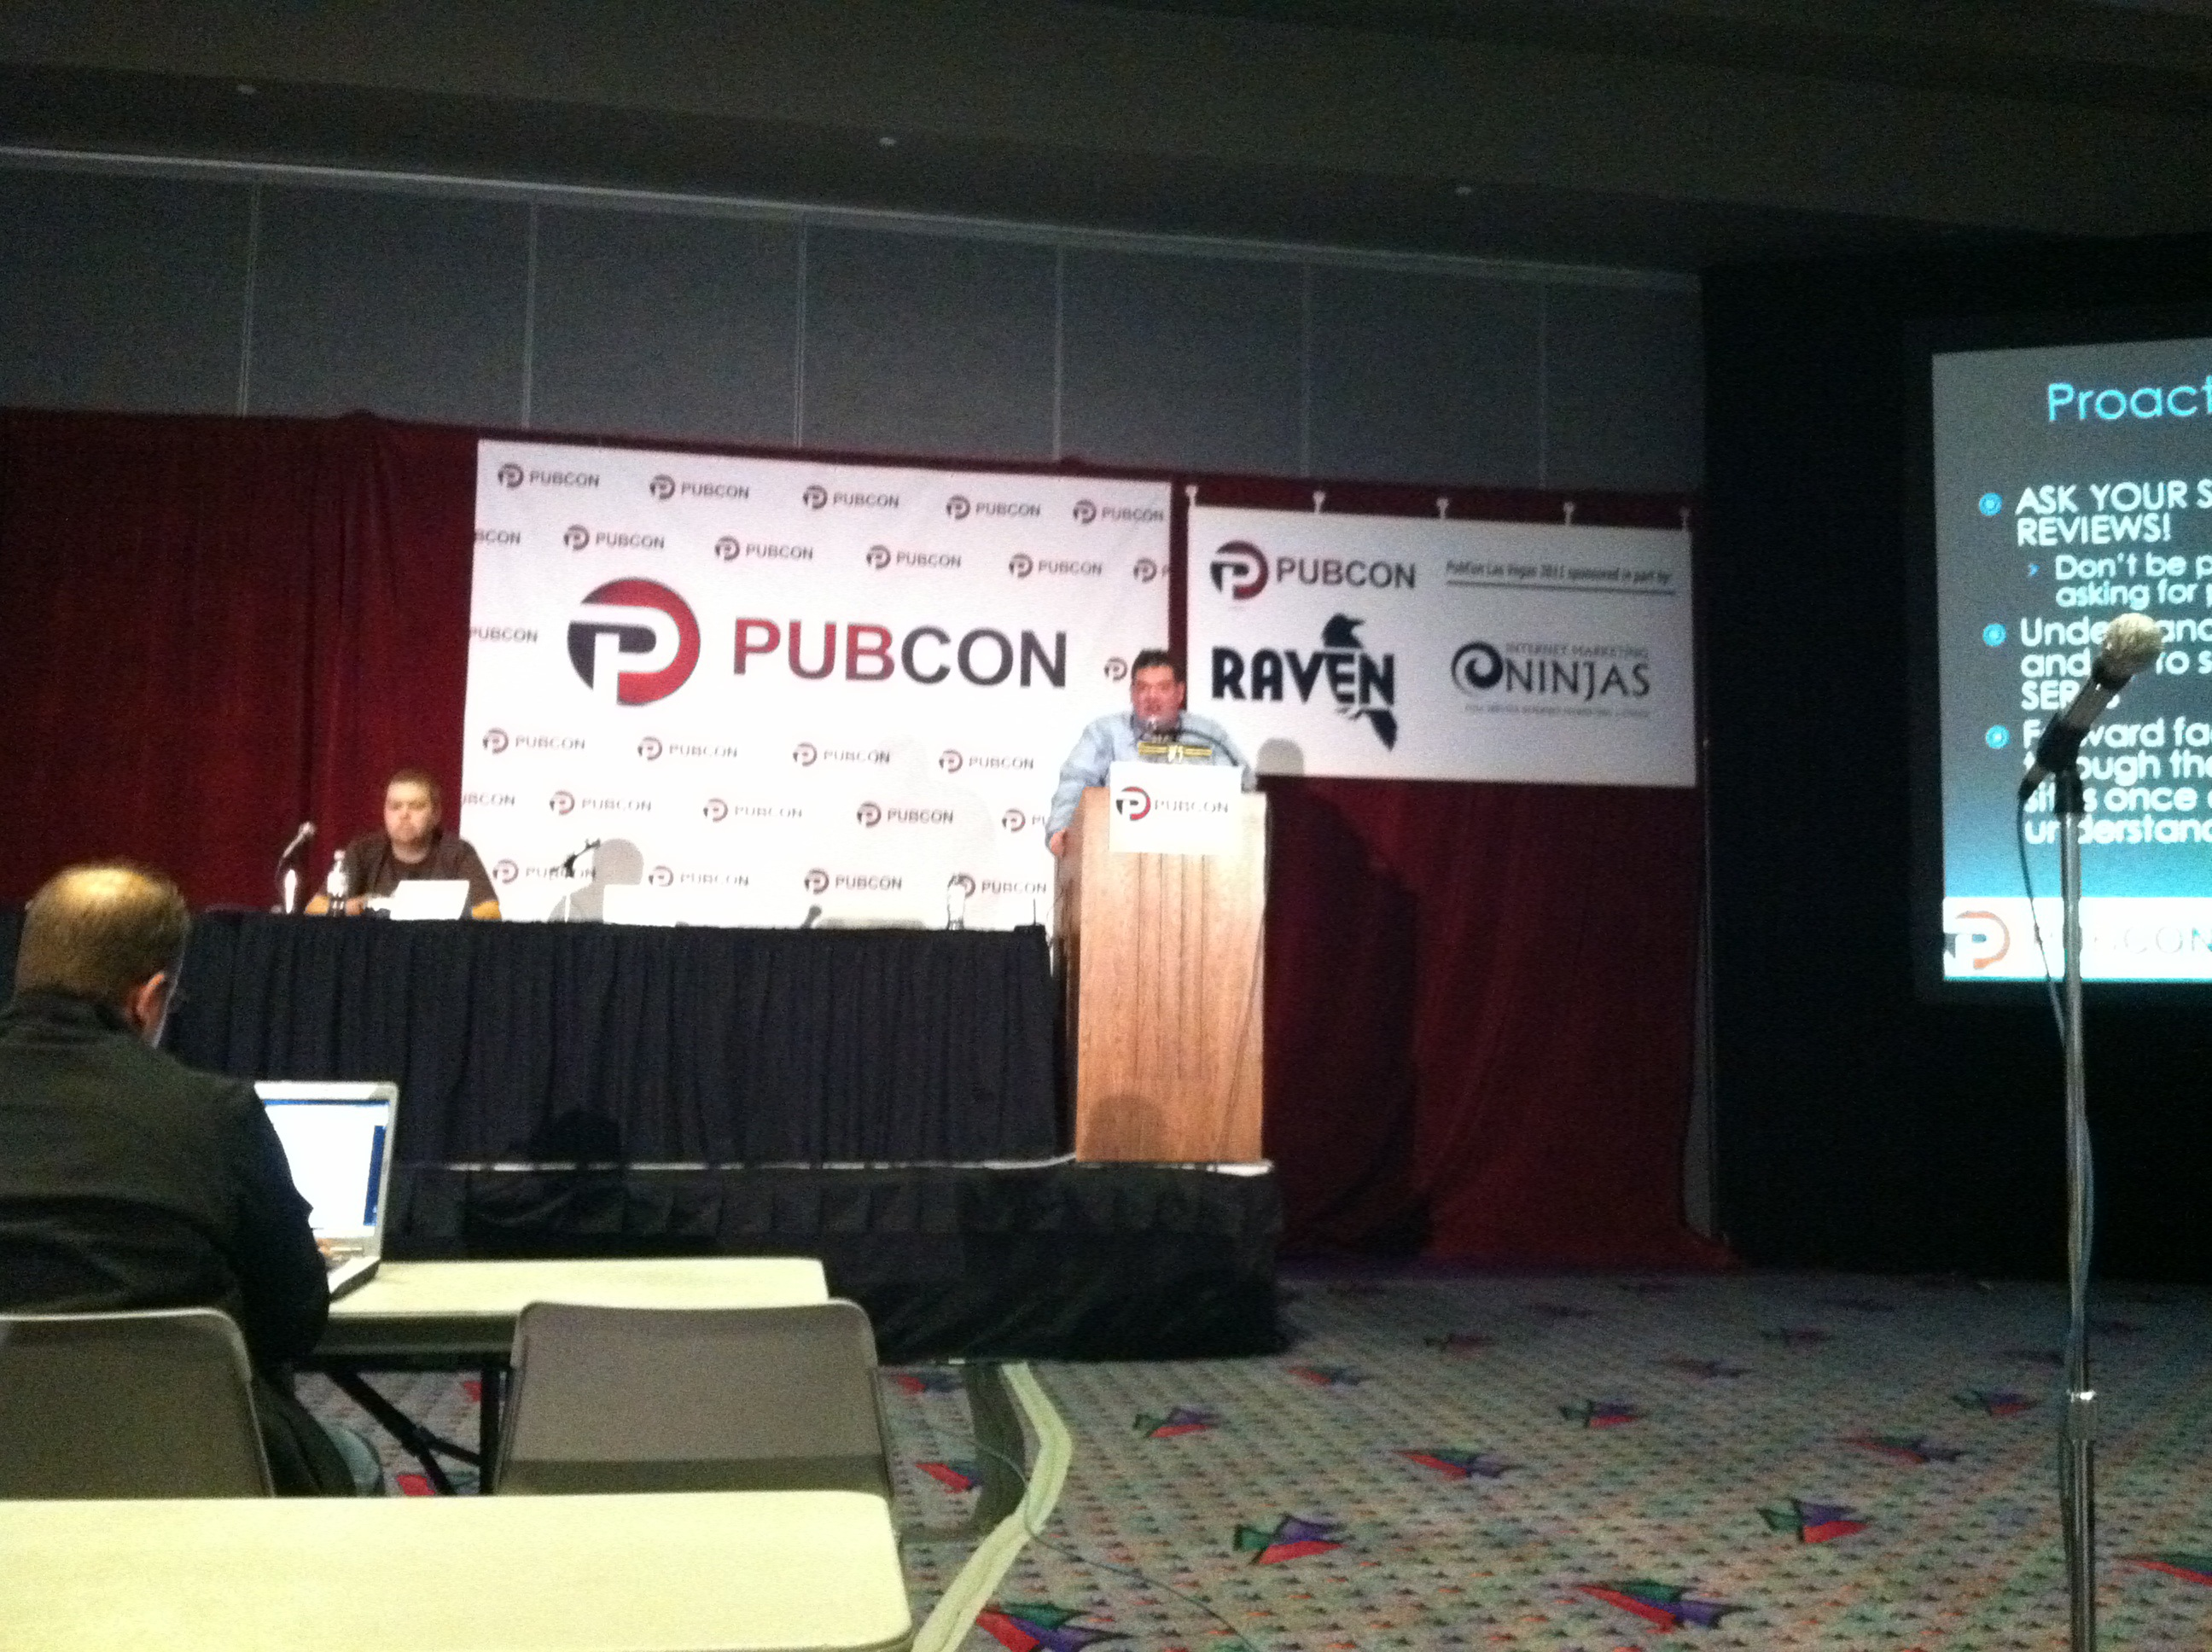 Proactive Reputation Management Strategies with Tony Wright #Pubcon